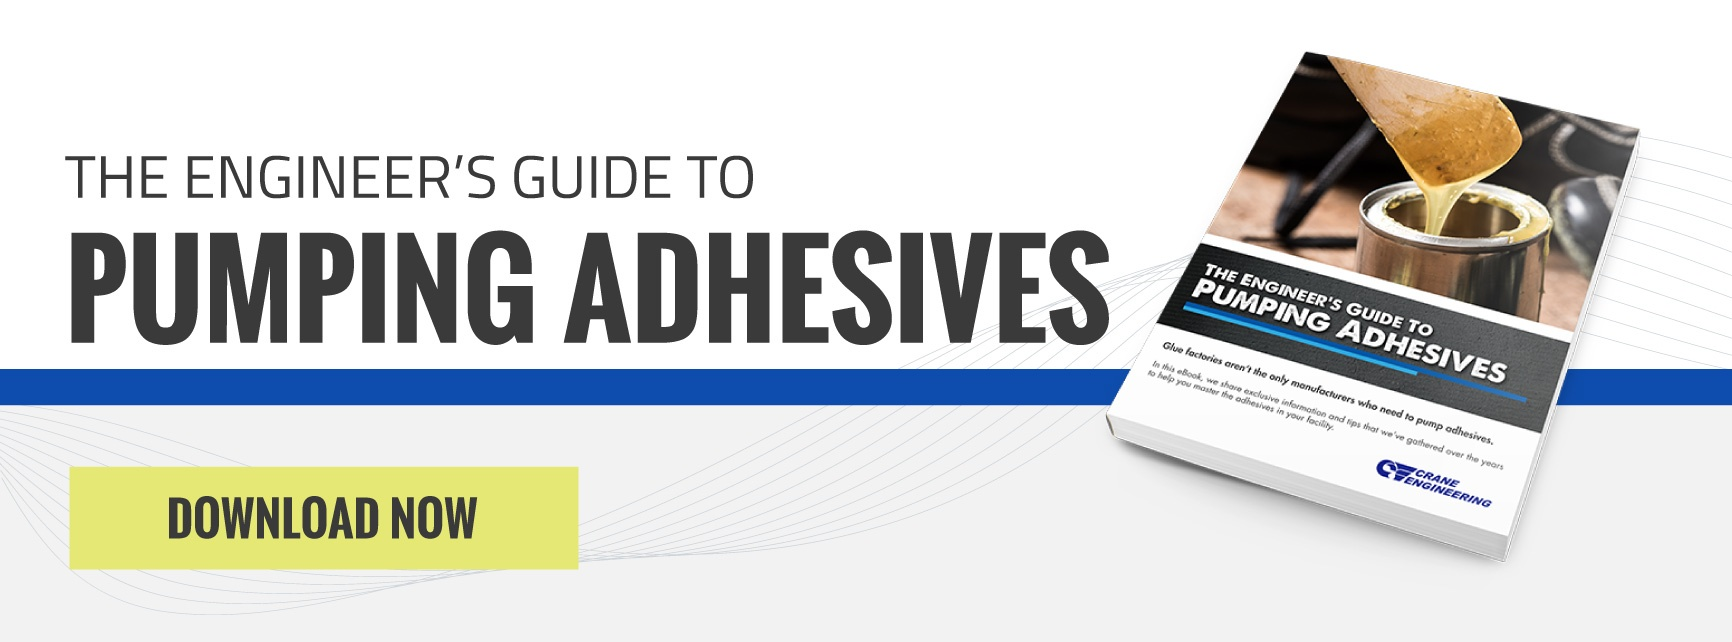 Download the Engineers Guide To Pumping Adhesives